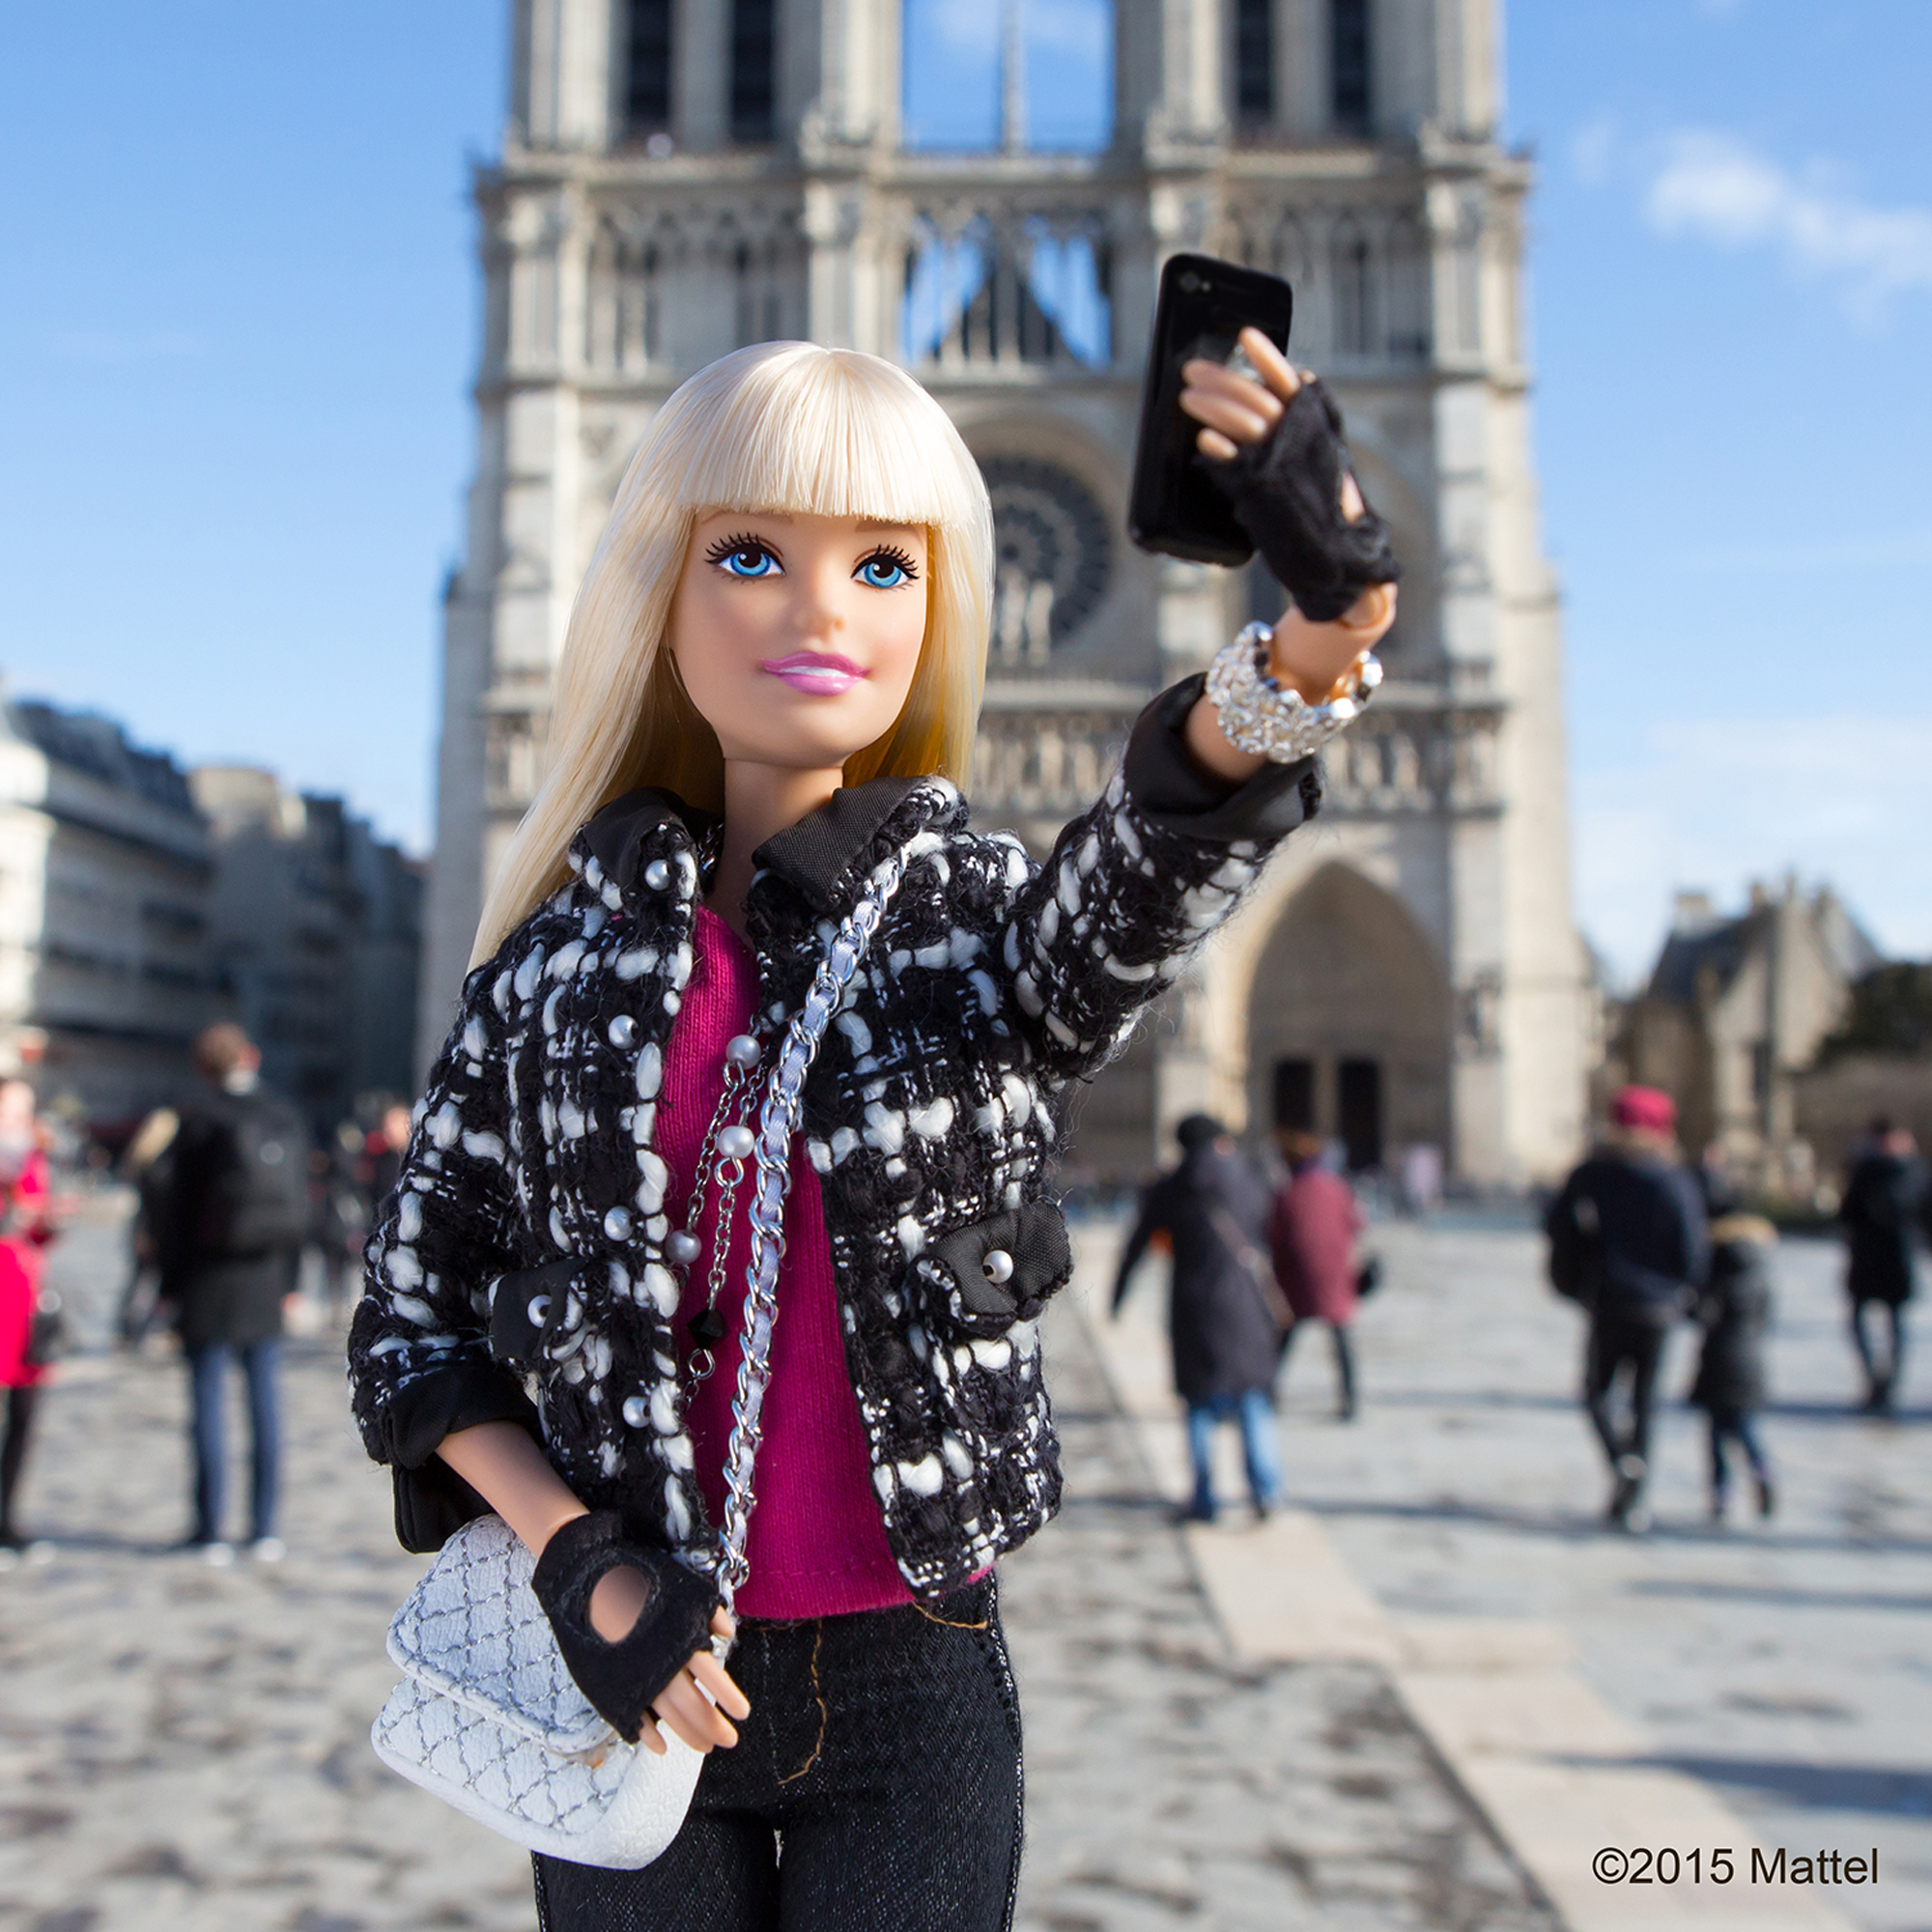 Behind the Scenes of Barbie's Insanely Popular